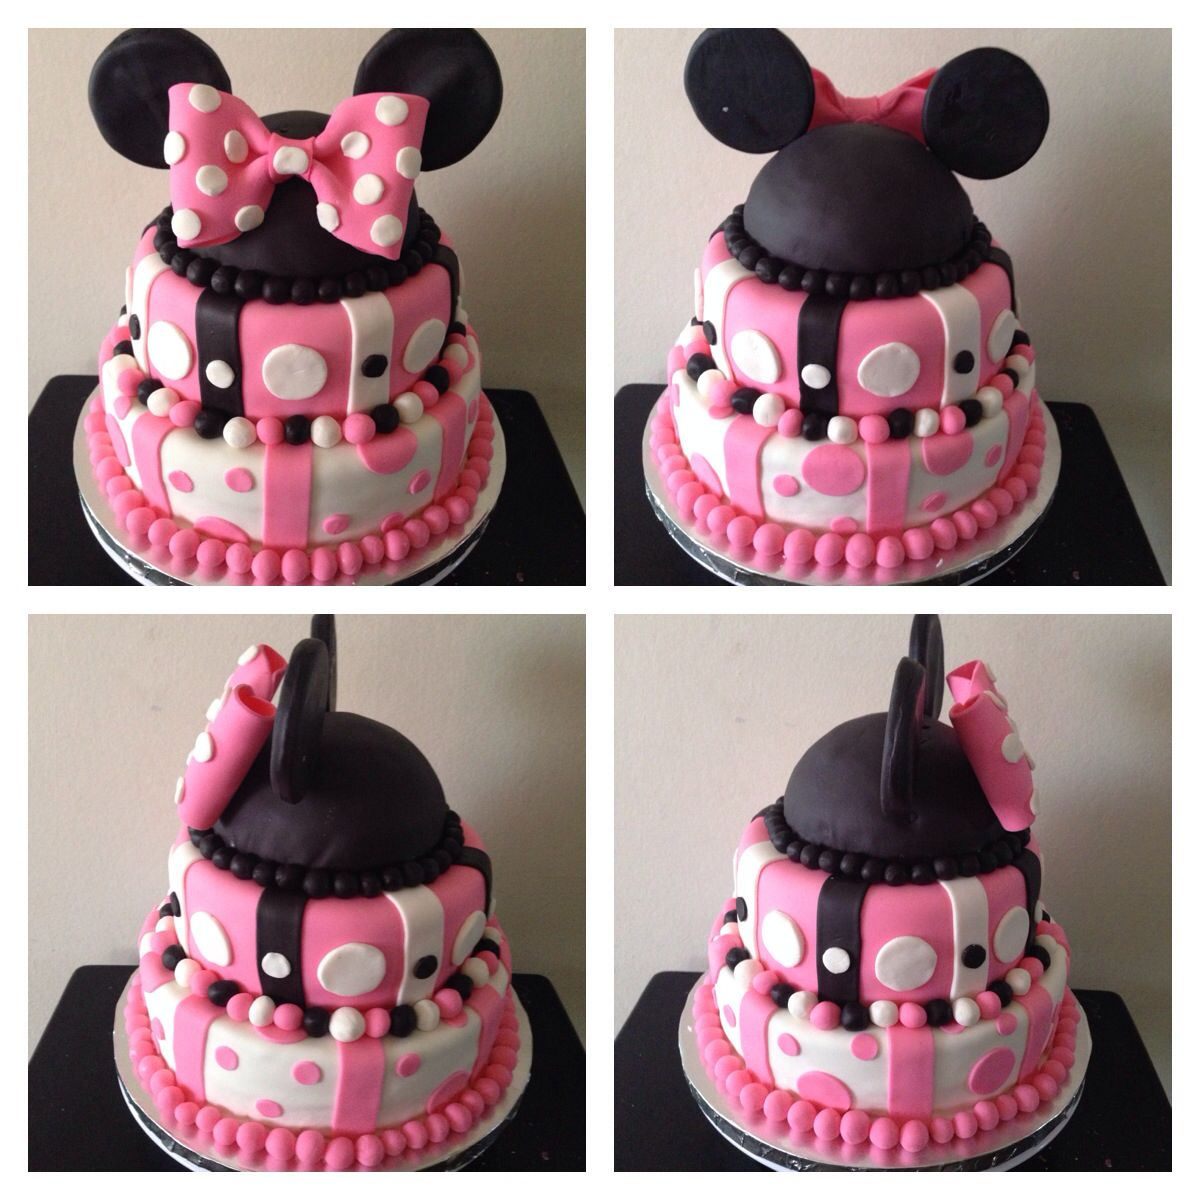 Minnie Mouse Baby Shower Cake Images : Minnie Mouse baby shower cake. My Cake Creations ...